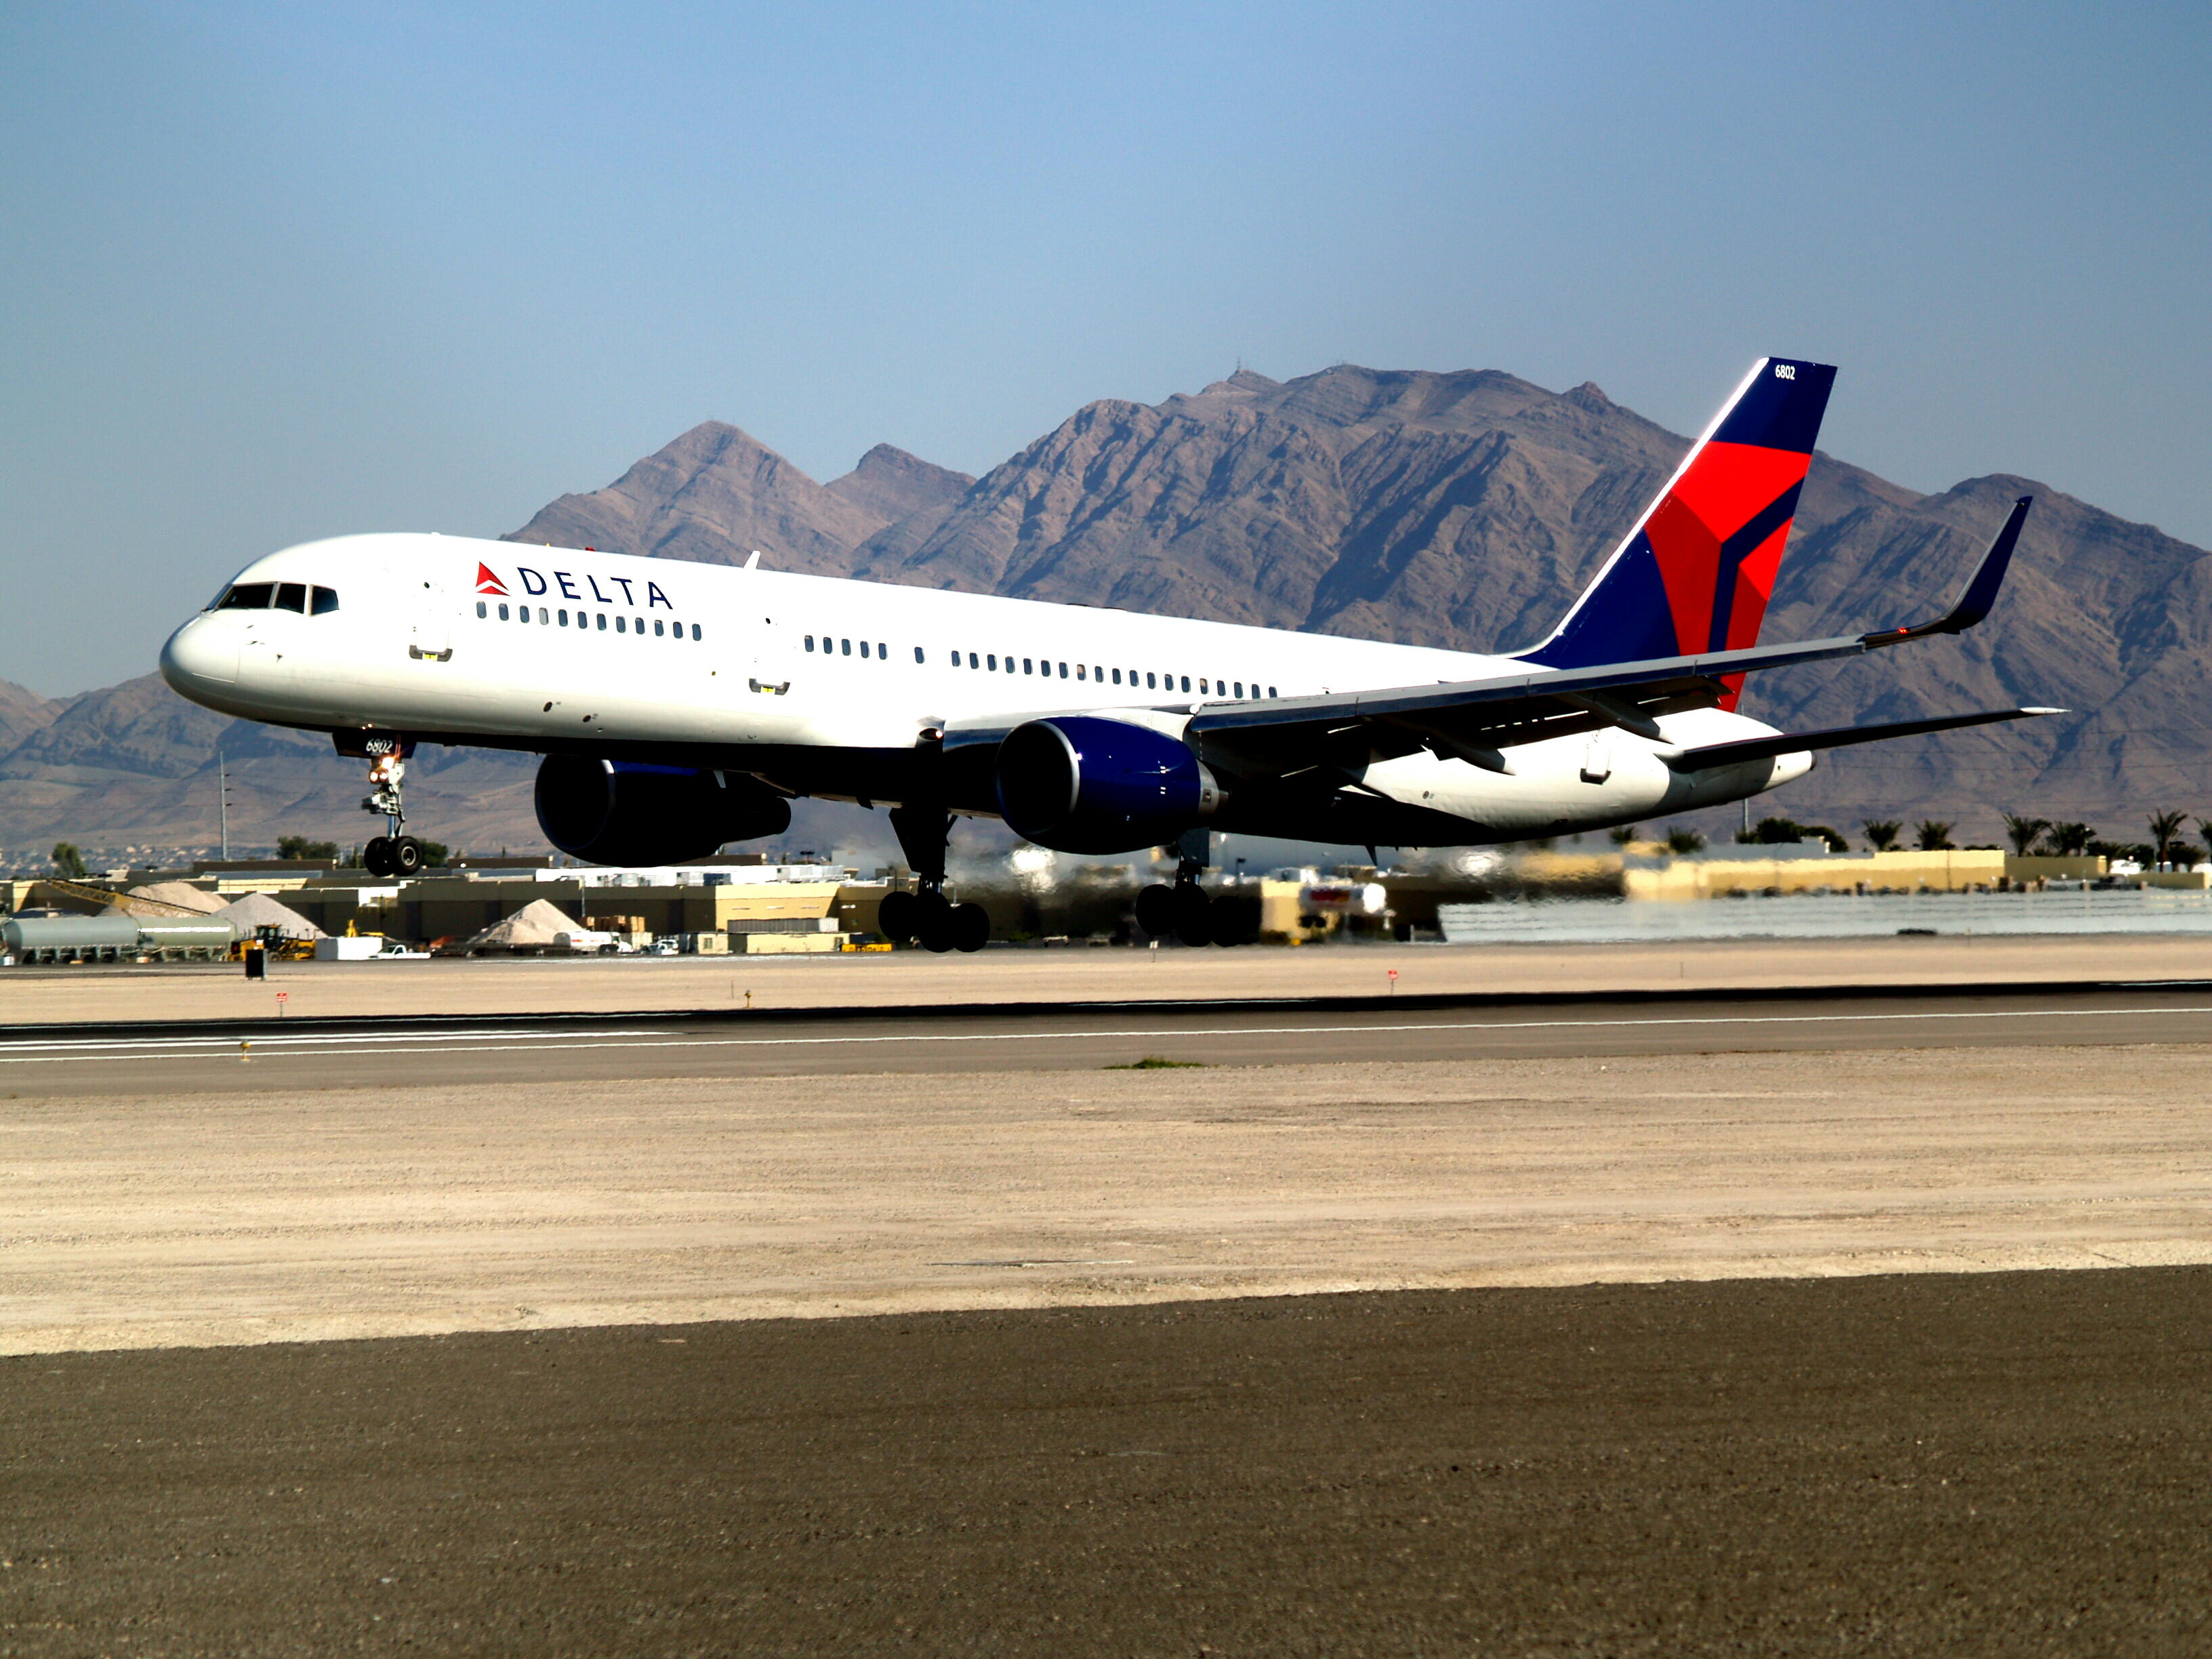 Delta Air Lines Apologizes After Listing Taiwan Tibet As Countries On Website